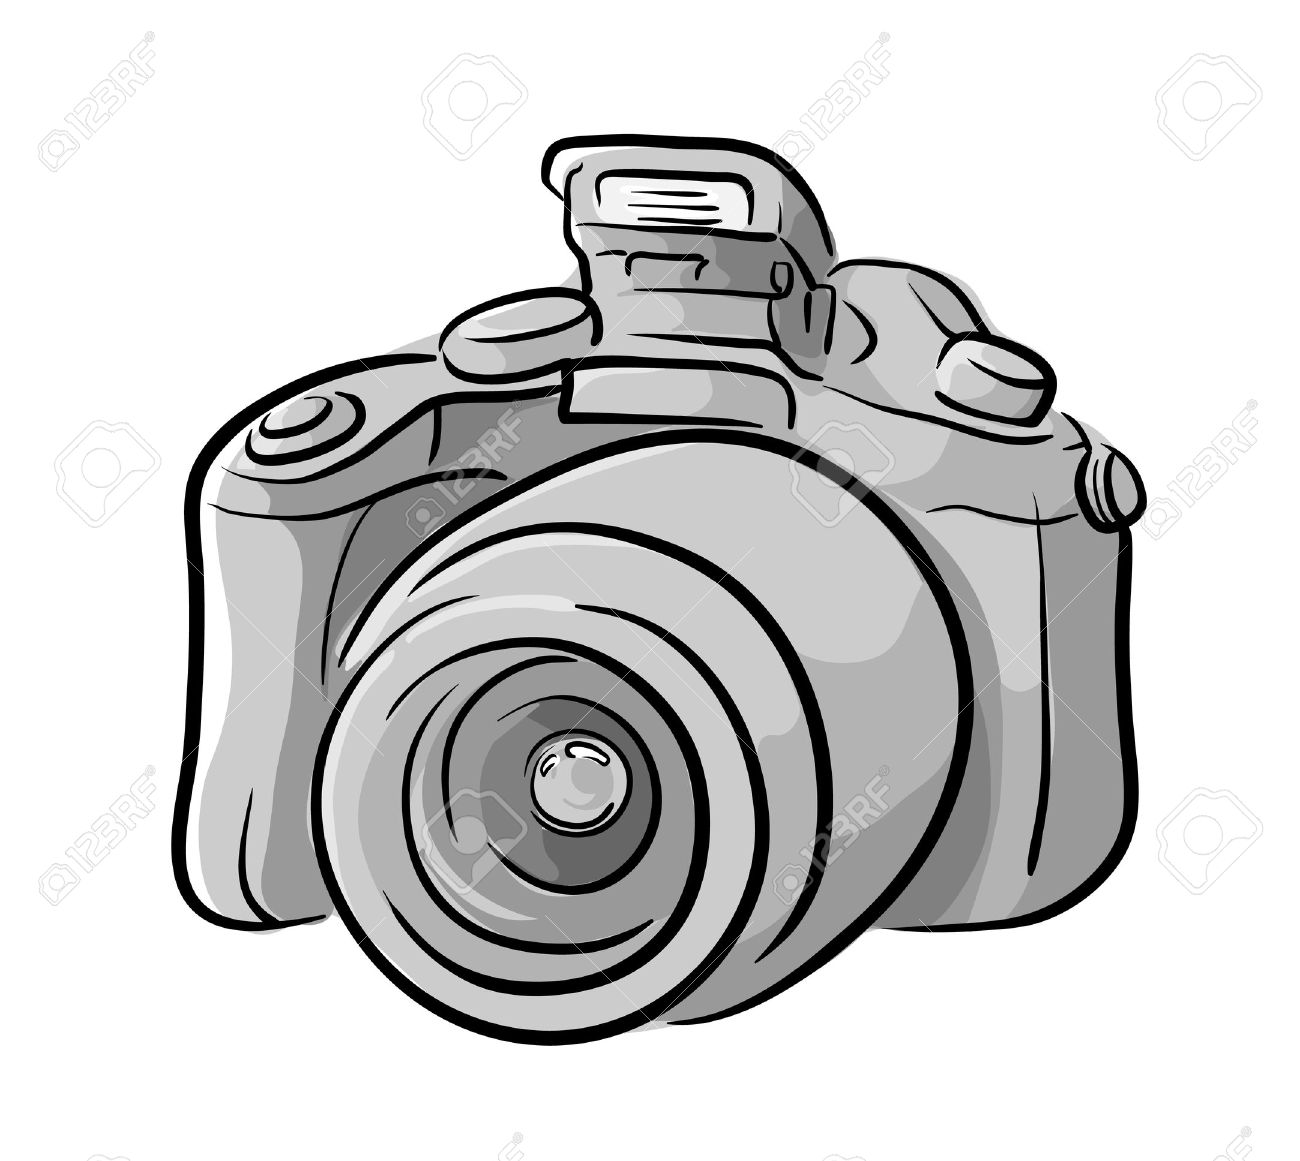 Digital Camera Drawing At Free For Personal Use Cabinet Parts Diagram And List Panasonic Cameraparts Model 1300x1161 Dslr A Hand Drawn Vector Illustration Of